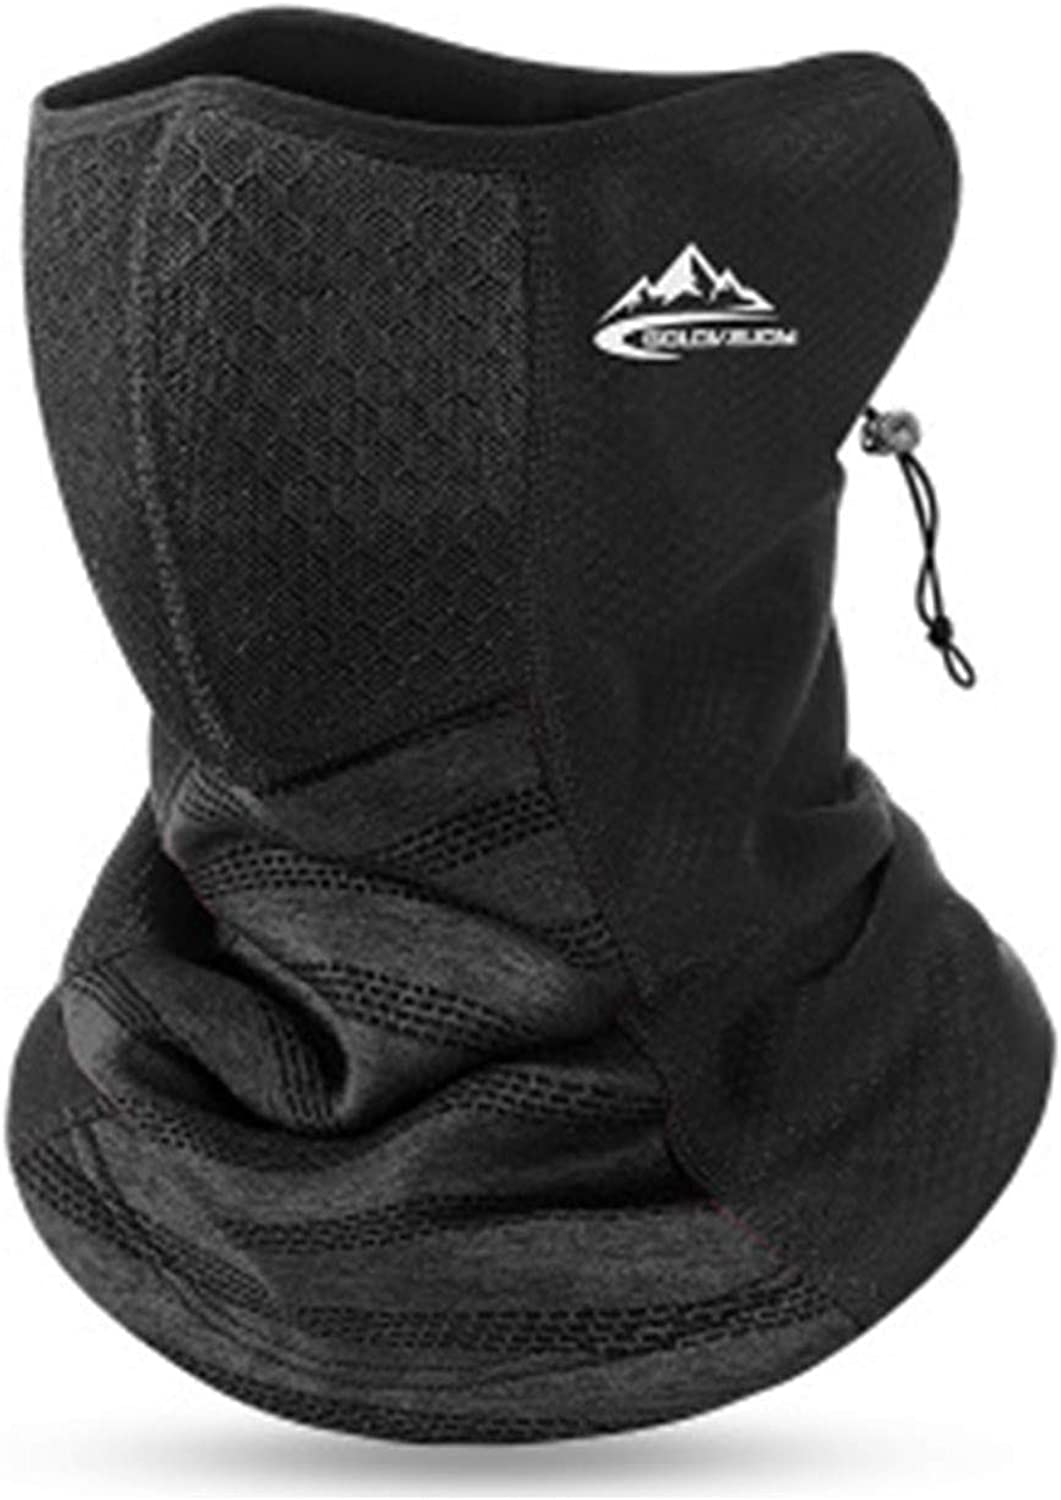 for Men and Women Cold Weather Running Outdoor Activities Ski Gloves Waterproof Skiing Skating Workout Training